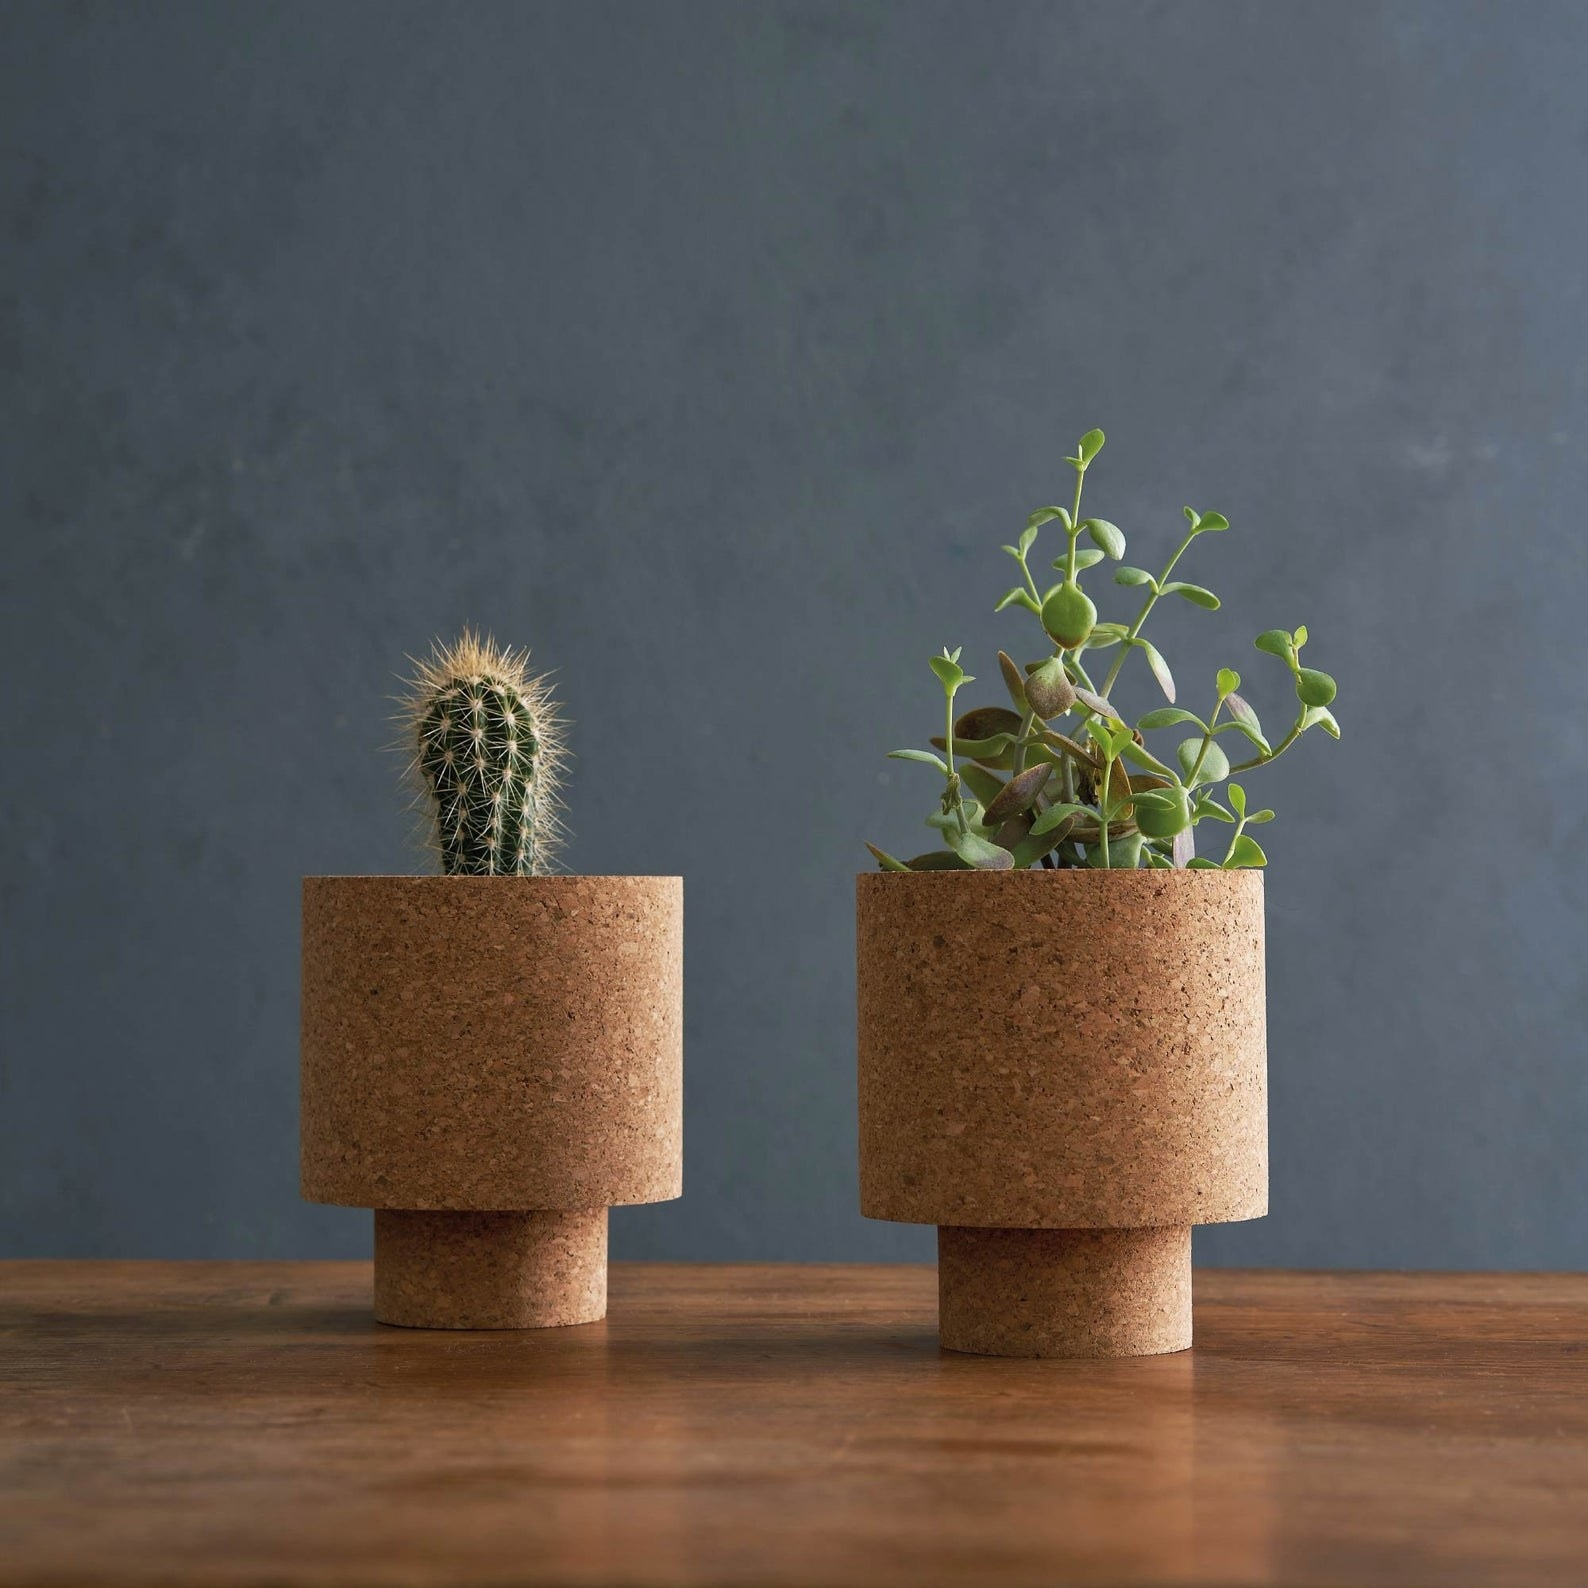 two cylinder-style cork planters with succulent plants in them